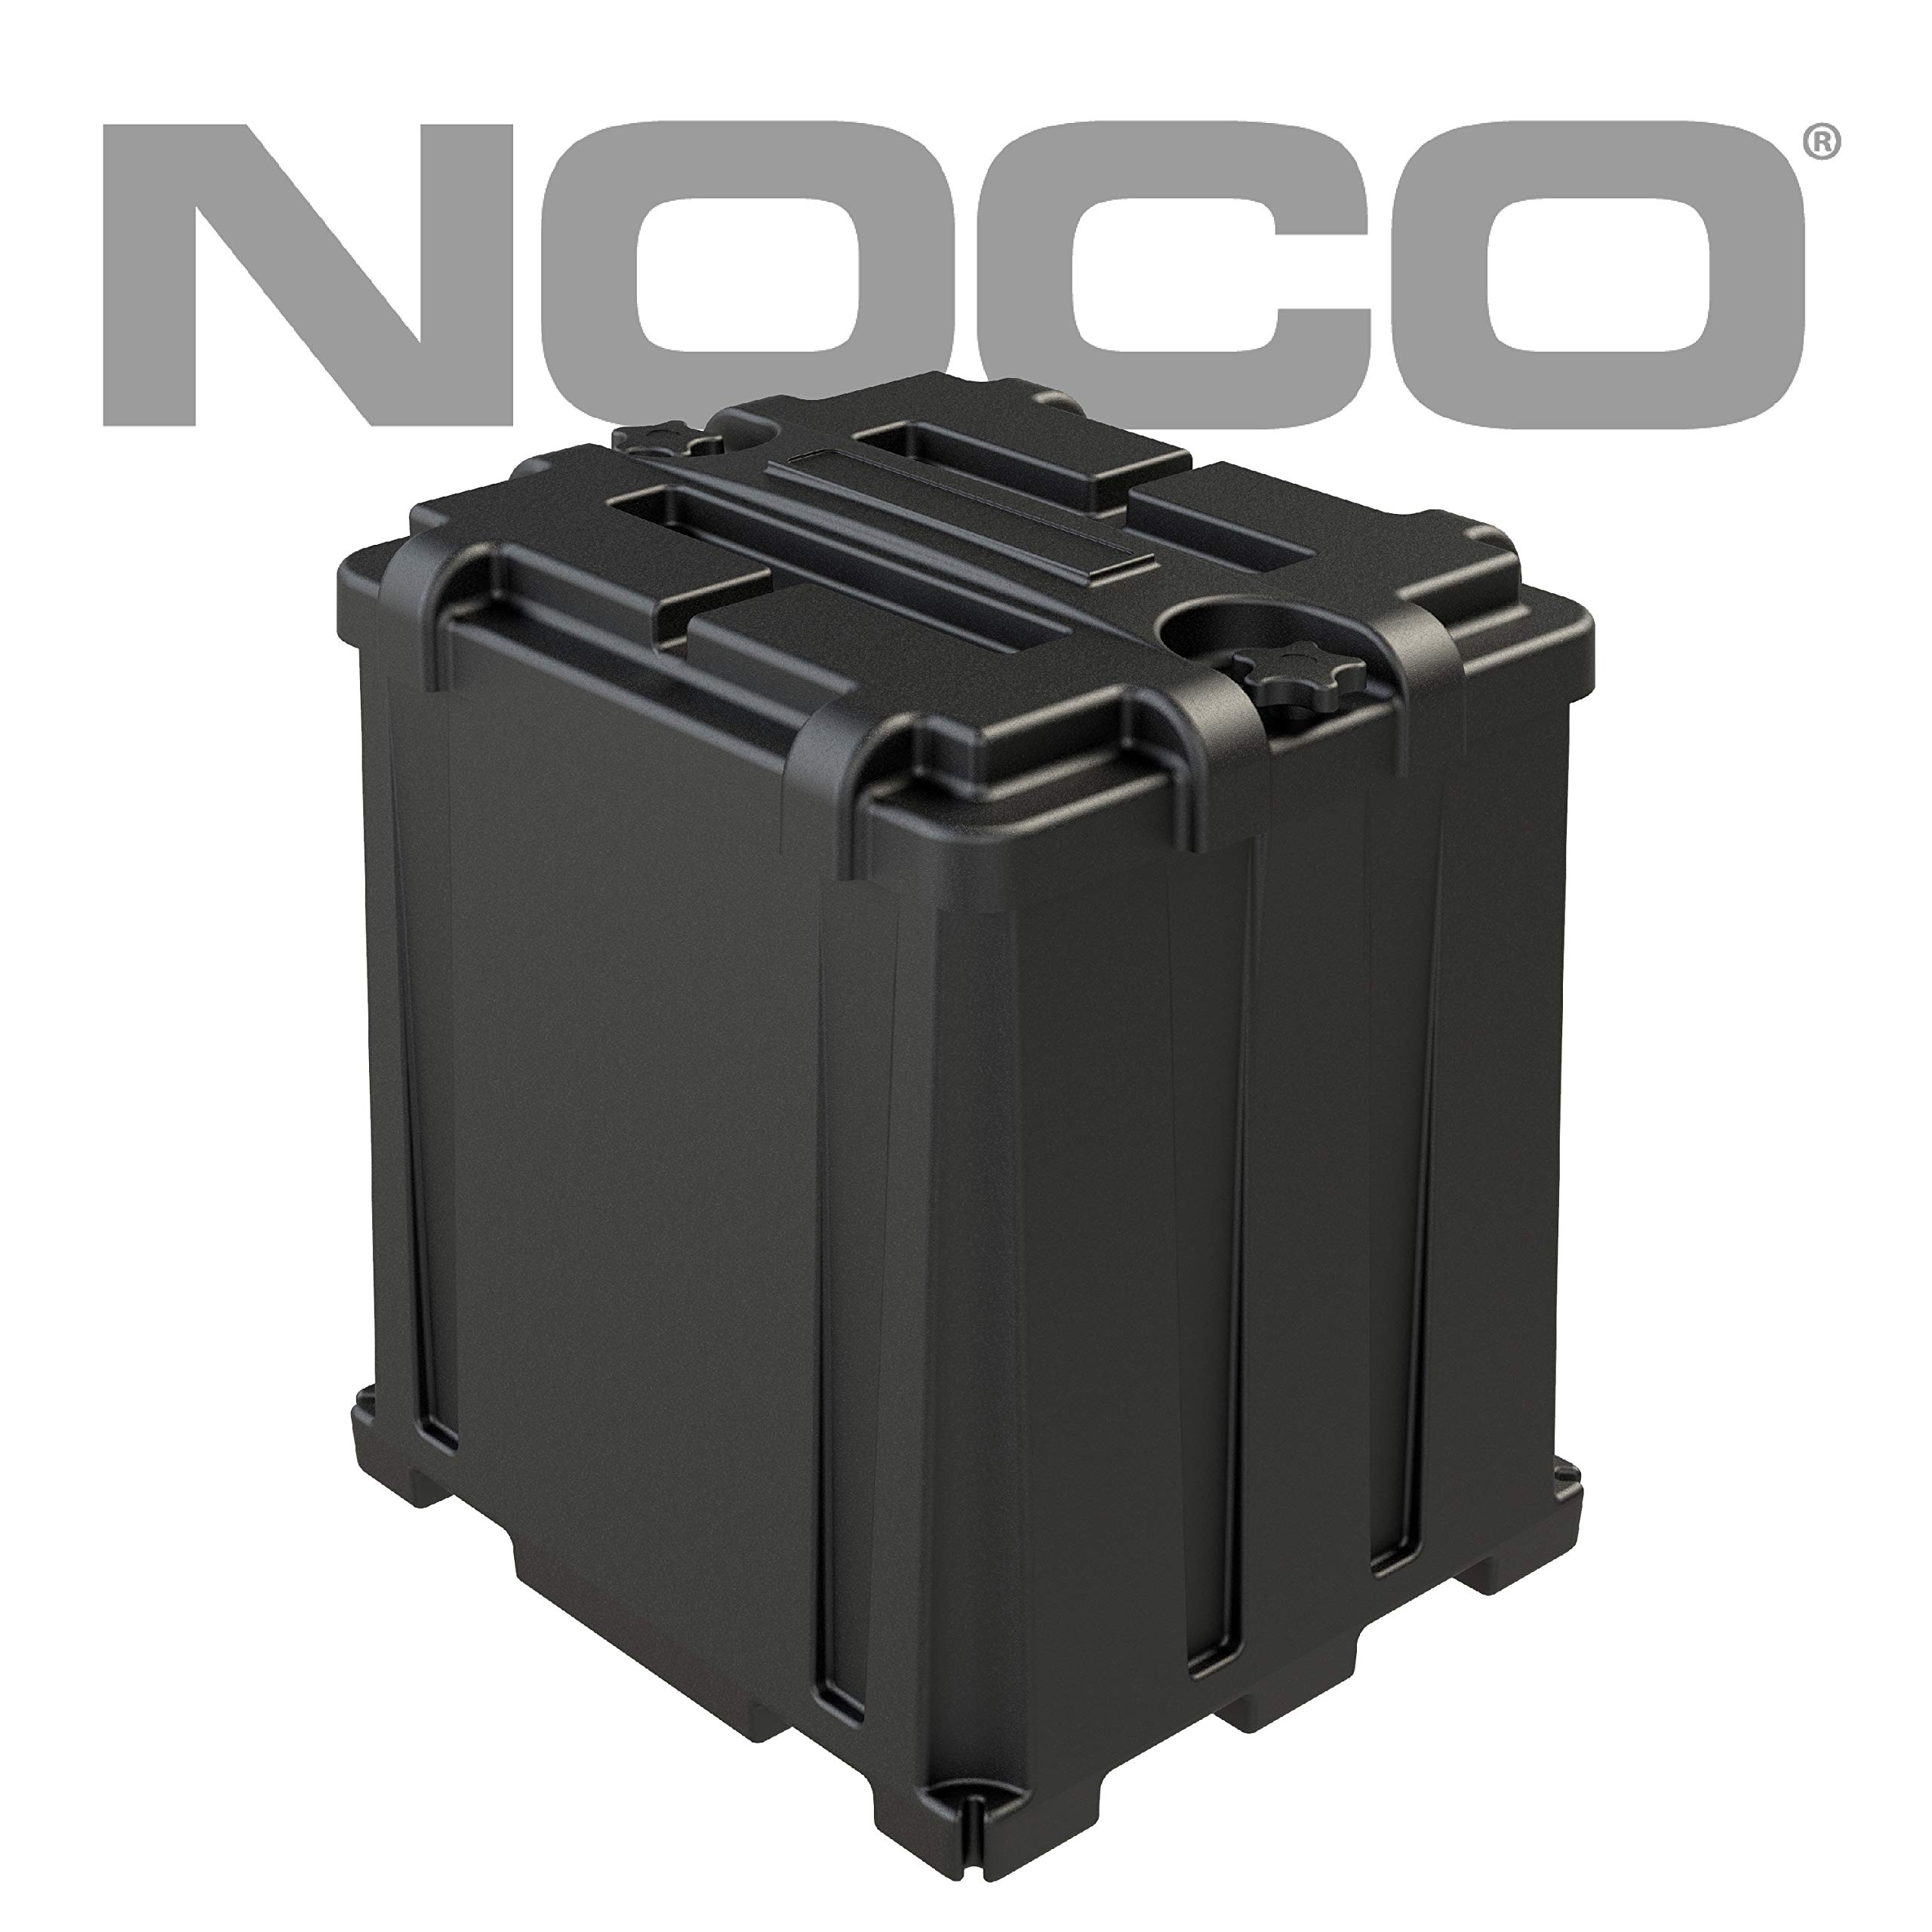 NOCO HM462 Dual L16 Commercial Grade Battery Box for Automotive, Marine and RV Batteries by NOCO